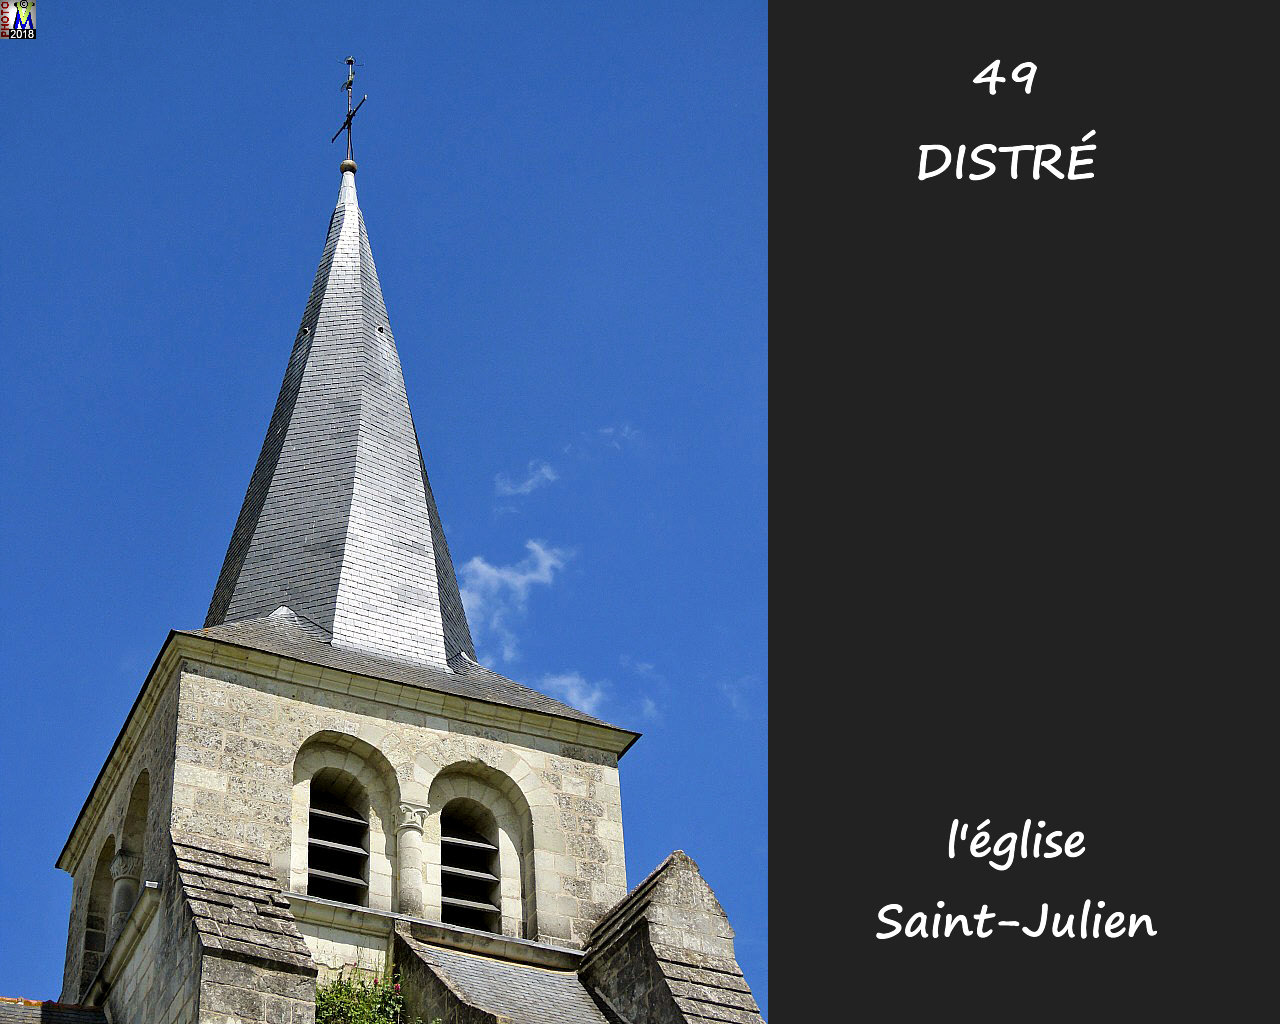 49DISTRE_eglise_1008.jpg